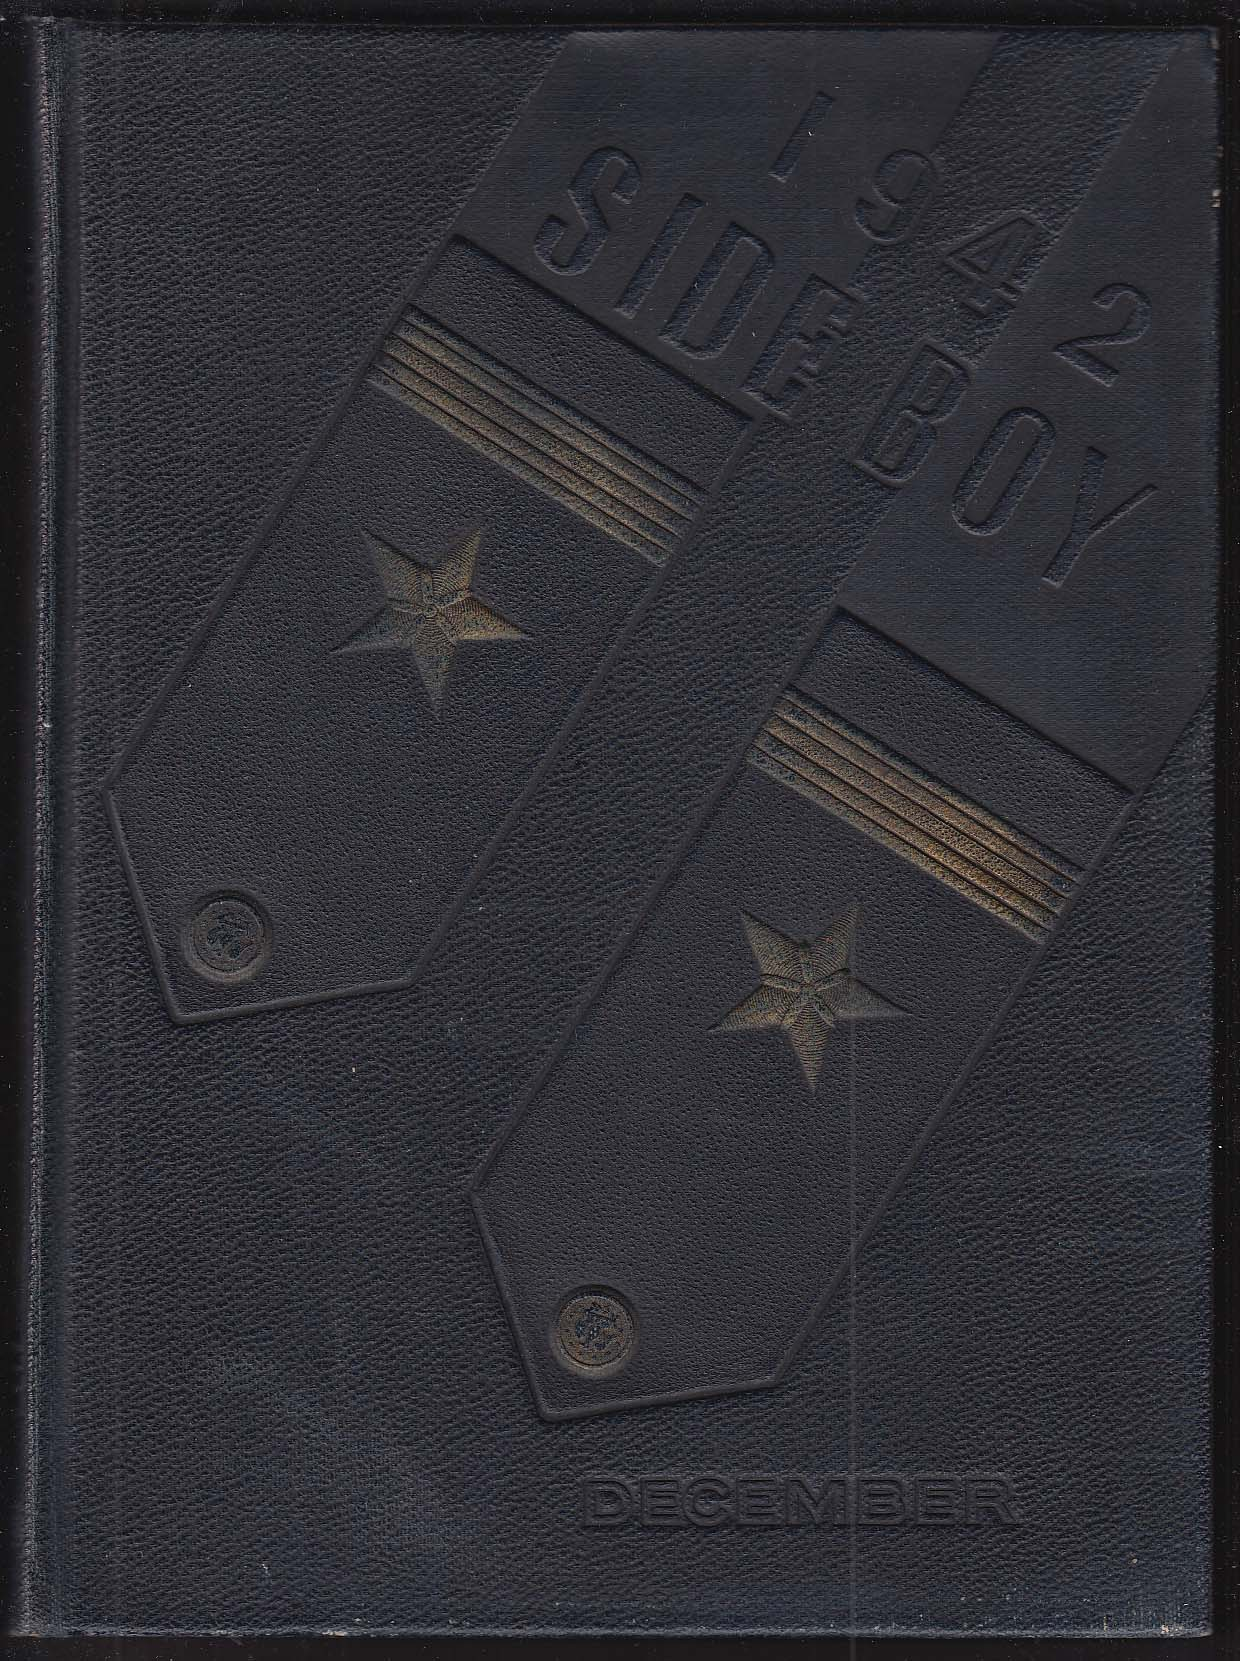 1942 Side Boy US Naval Reserve Midshipmen's School Yearbook New York NY